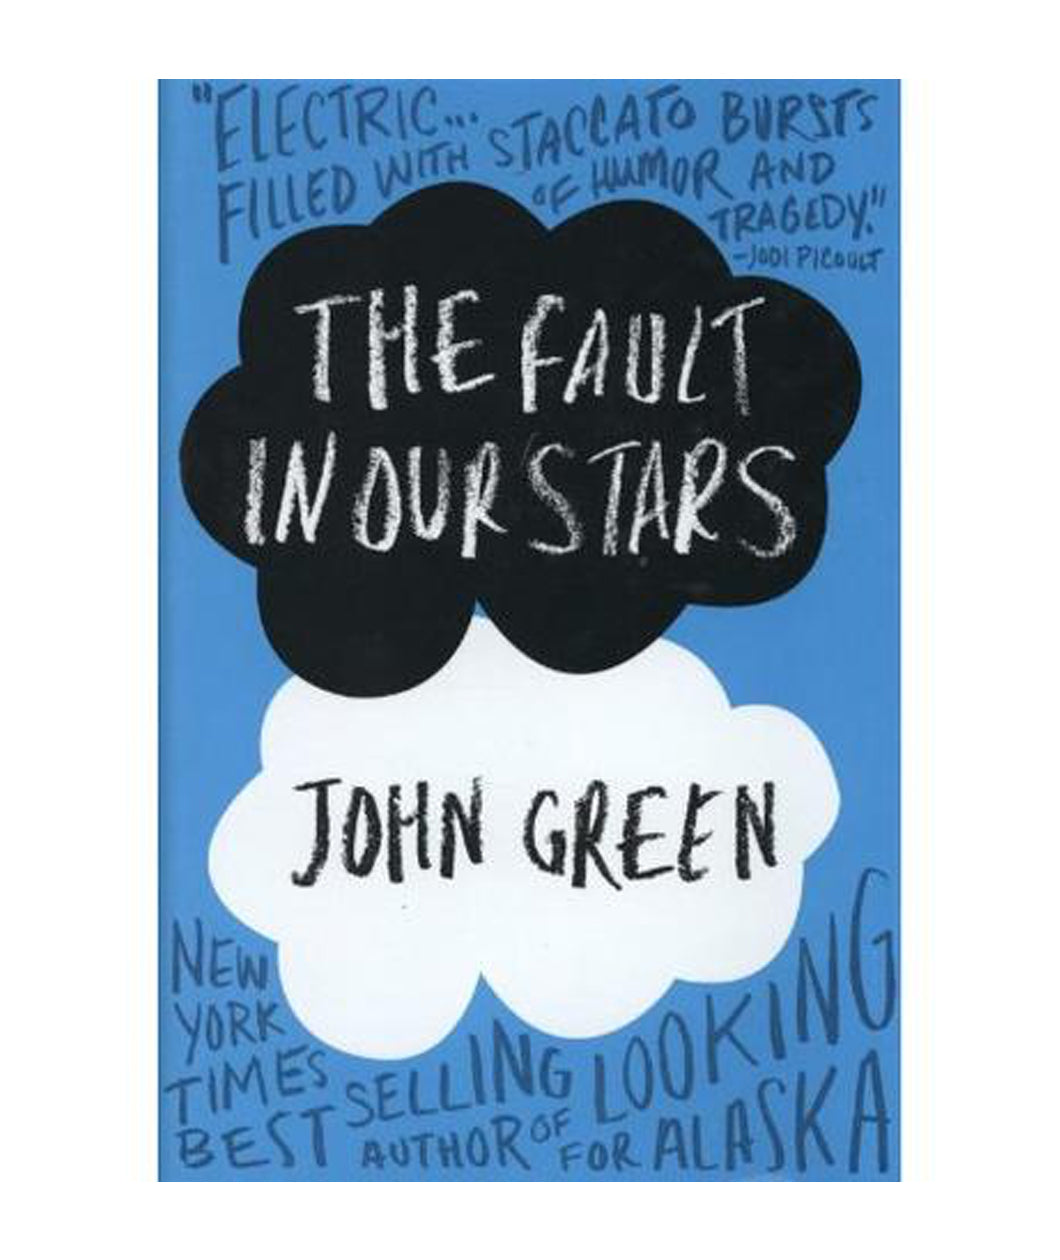 The Fault in Our Stars Audiobook Box Set